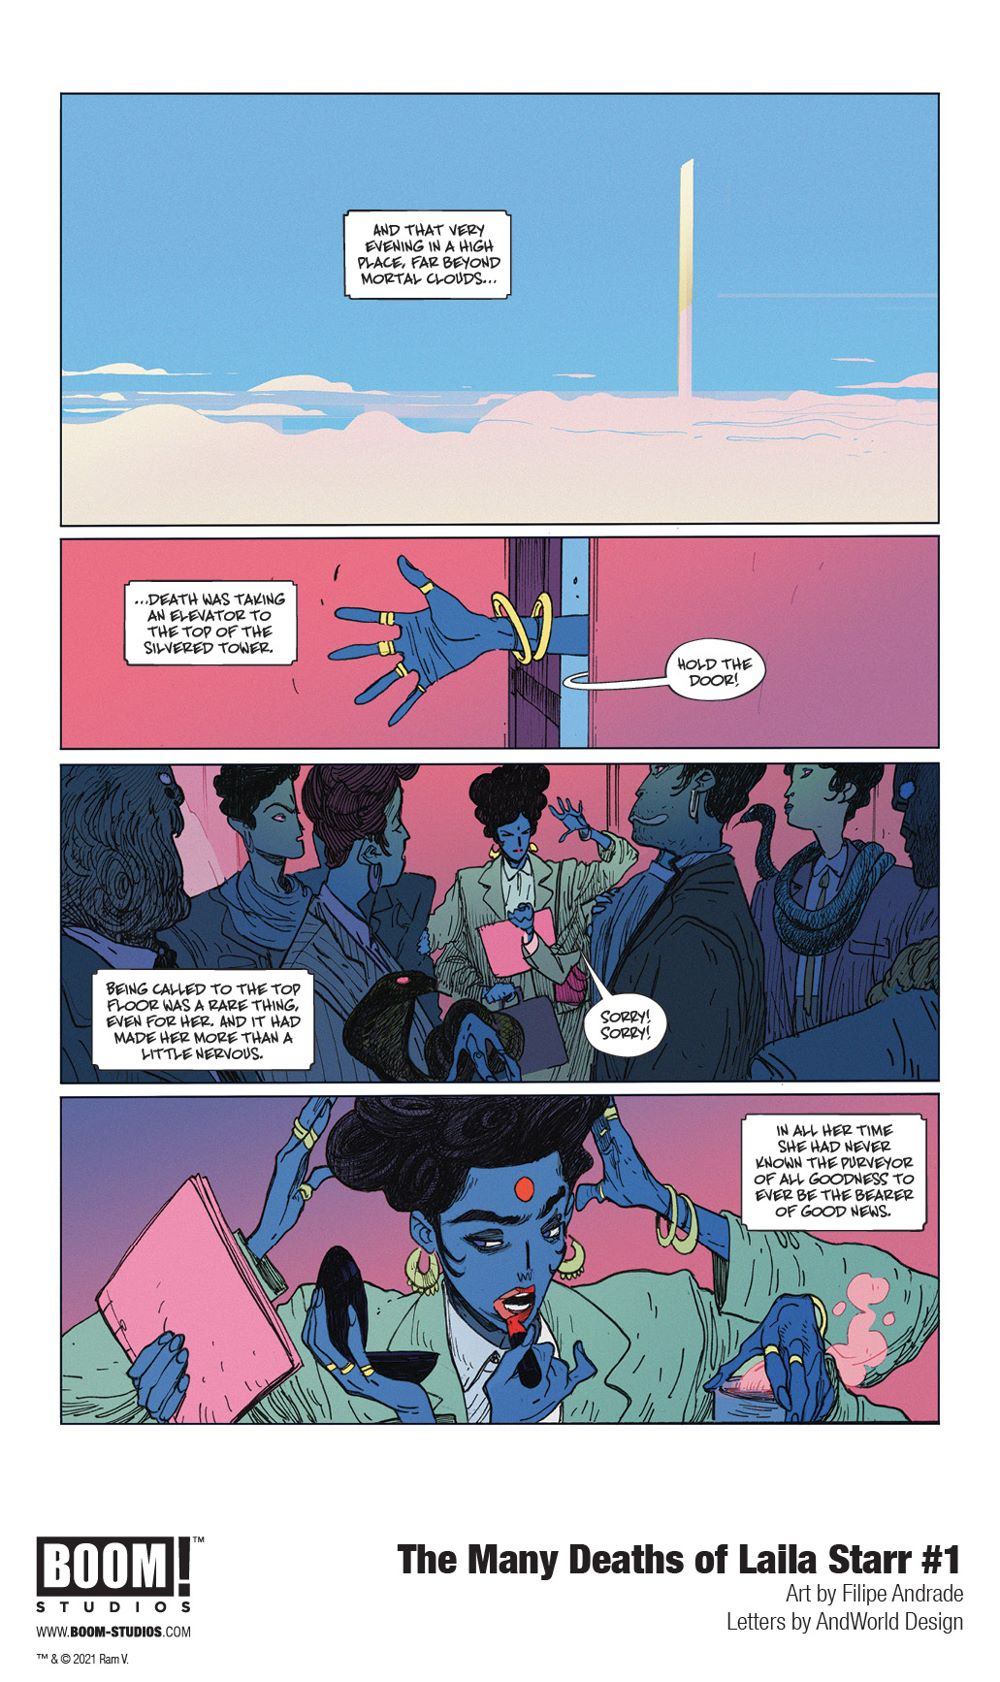 ManyDeathsLailaStarr_001_InteriorArt_004_PROMO First Look at BOOM! Studios' THE MANY DEATHS OF LAILA STARR #1